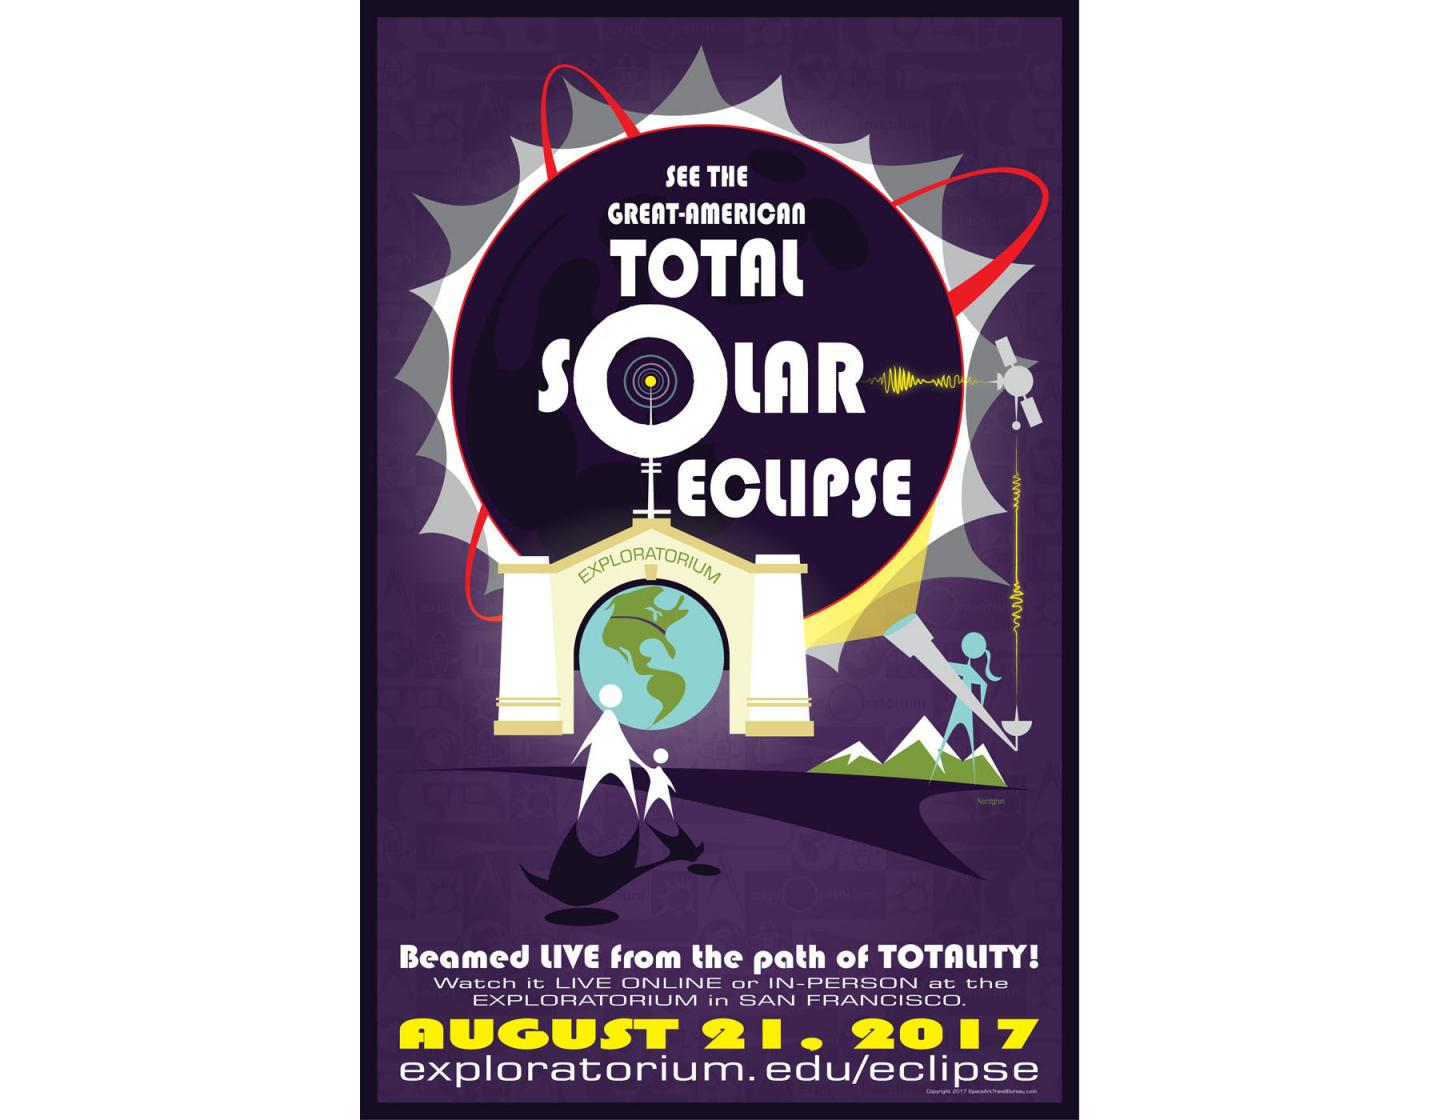 8-1-17-eclipse-poster-exploratorium-1